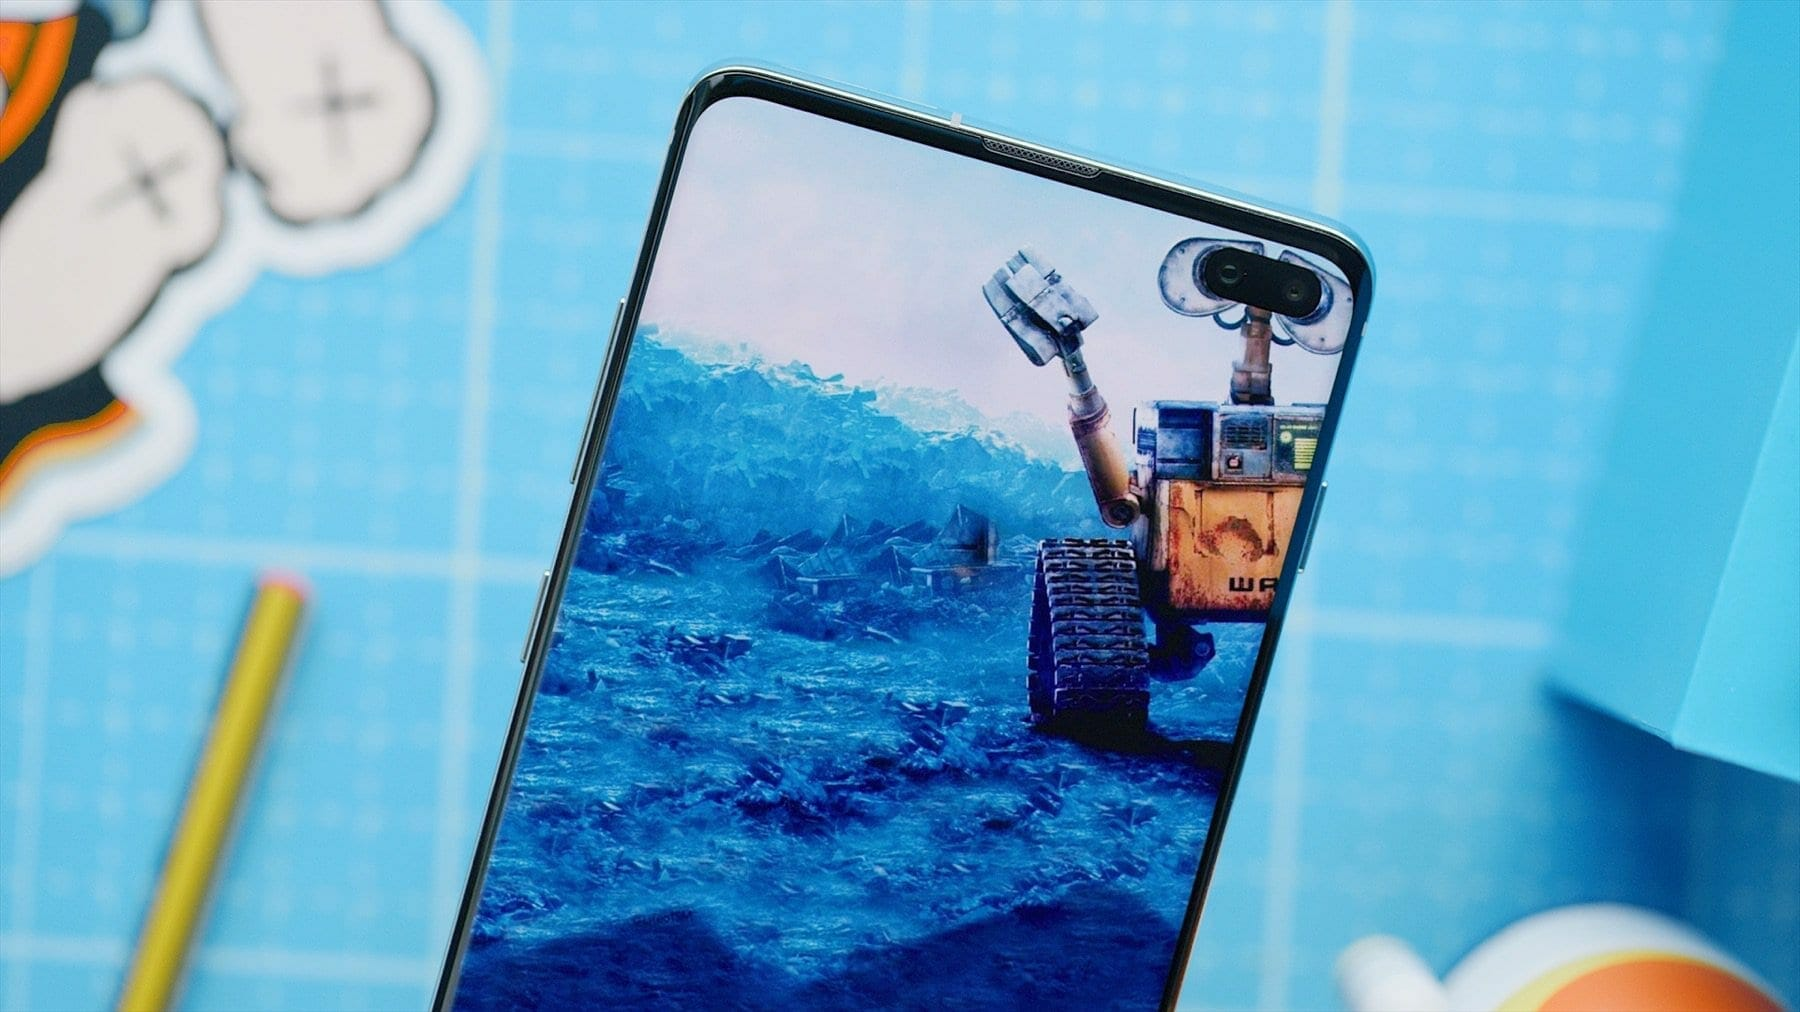 Best Samsung Galaxy S10 S10 Plus Wallpapers To Hide Camera Cutout High Res Collection 2 Thenerdmag